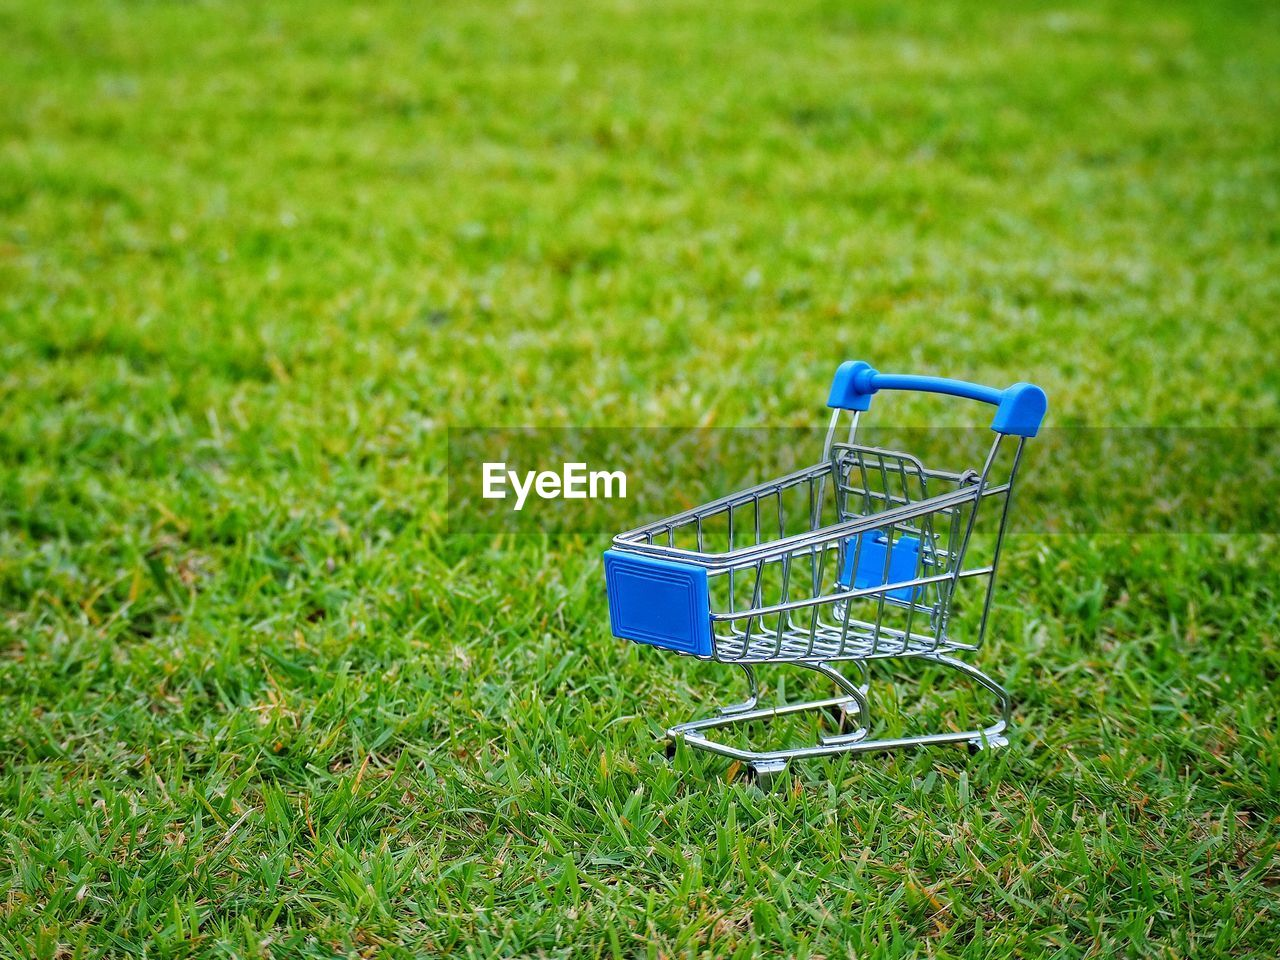 grass, shopping cart, green color, plant, field, blue, no people, land, nature, shopping, day, outdoors, metal, growth, consumerism, plain, retail, trolley, single object, absence